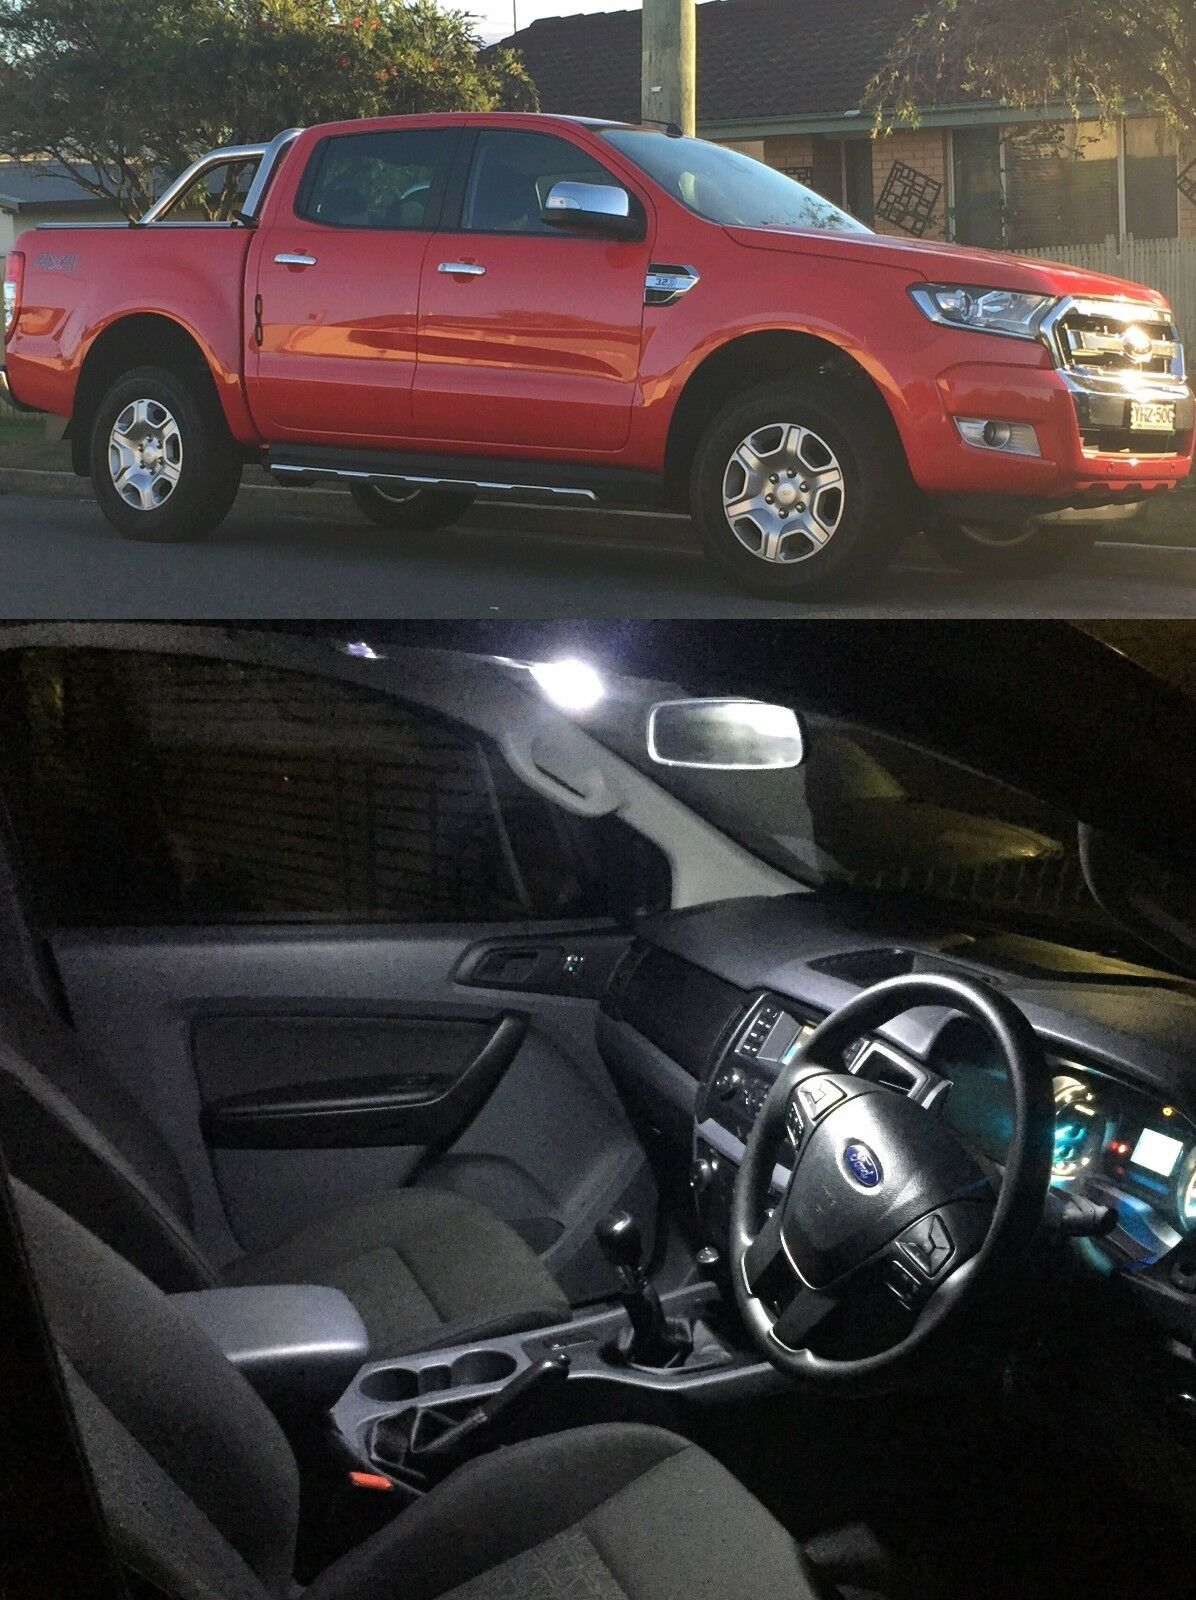 Ford Ranger 2016 2018 Interior Led Light Kit Dual Crew Cab Xl Xlt Hid Driving Bar Wiring Harness 40a Switch Relay 12v Ebay 1 Of 5only 5 Available